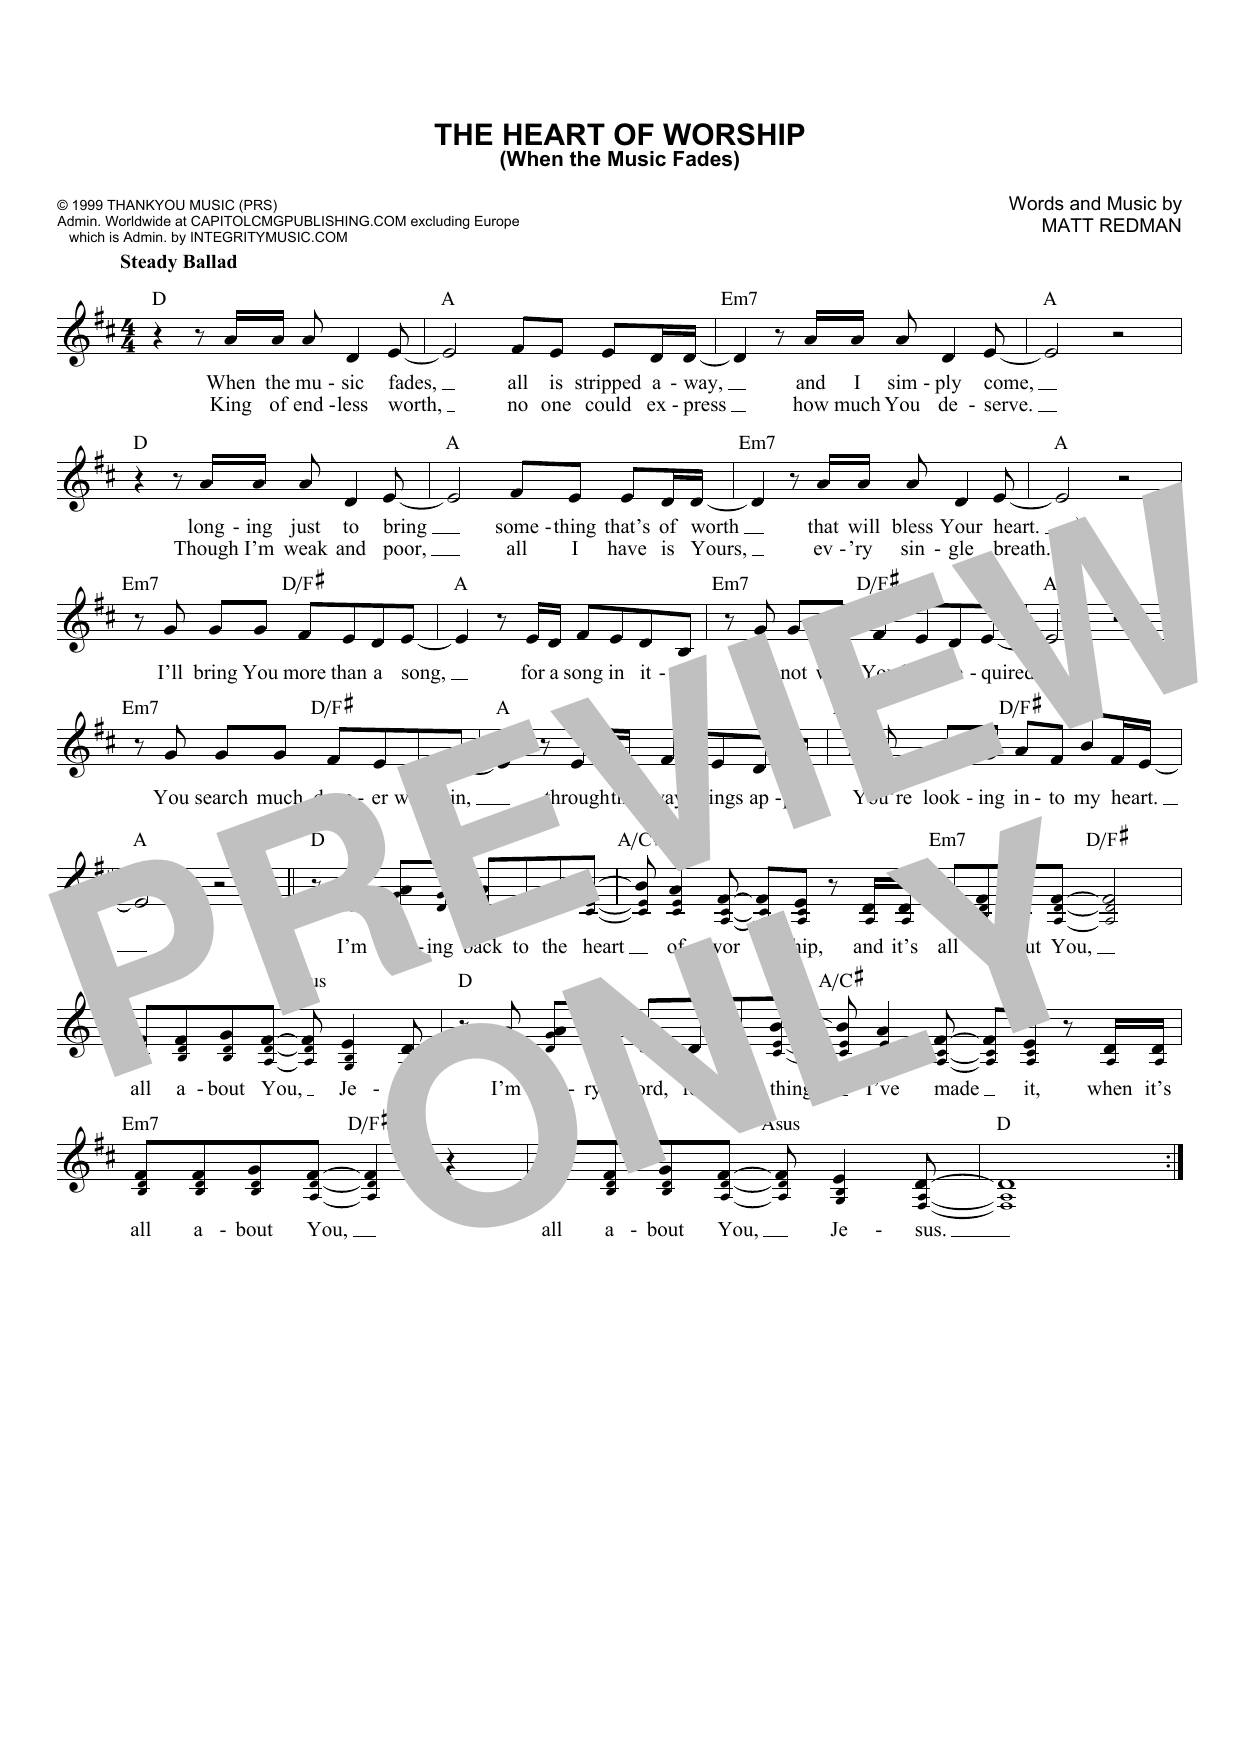 Matt Redman The Heart Of Worship (When The Music Fades) sheet music notes and chords. Download Printable PDF.